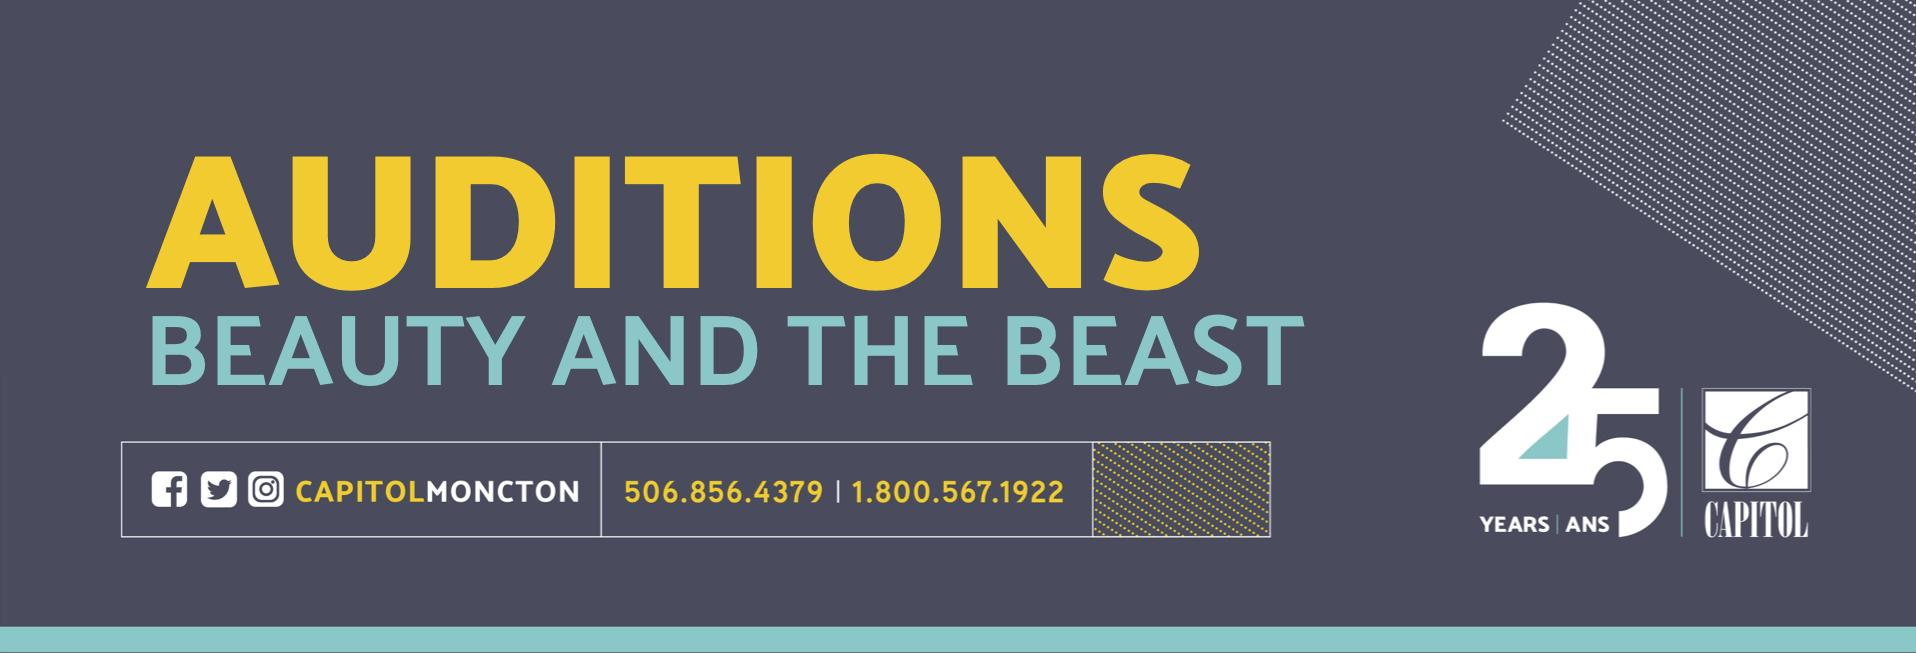 Auditions header BEAUTY AND THE BEAST